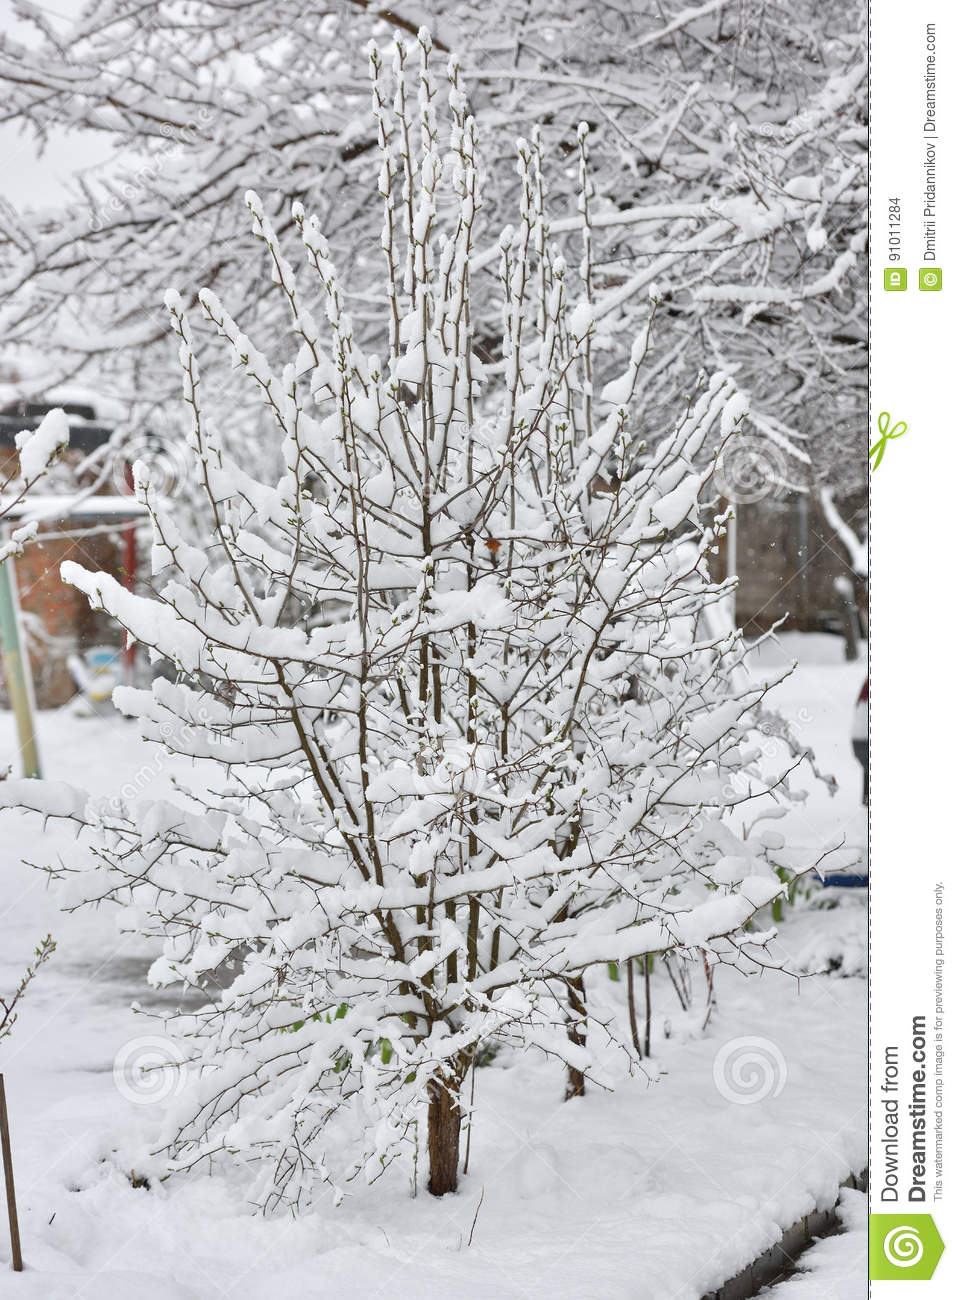 A small tree under snow in April